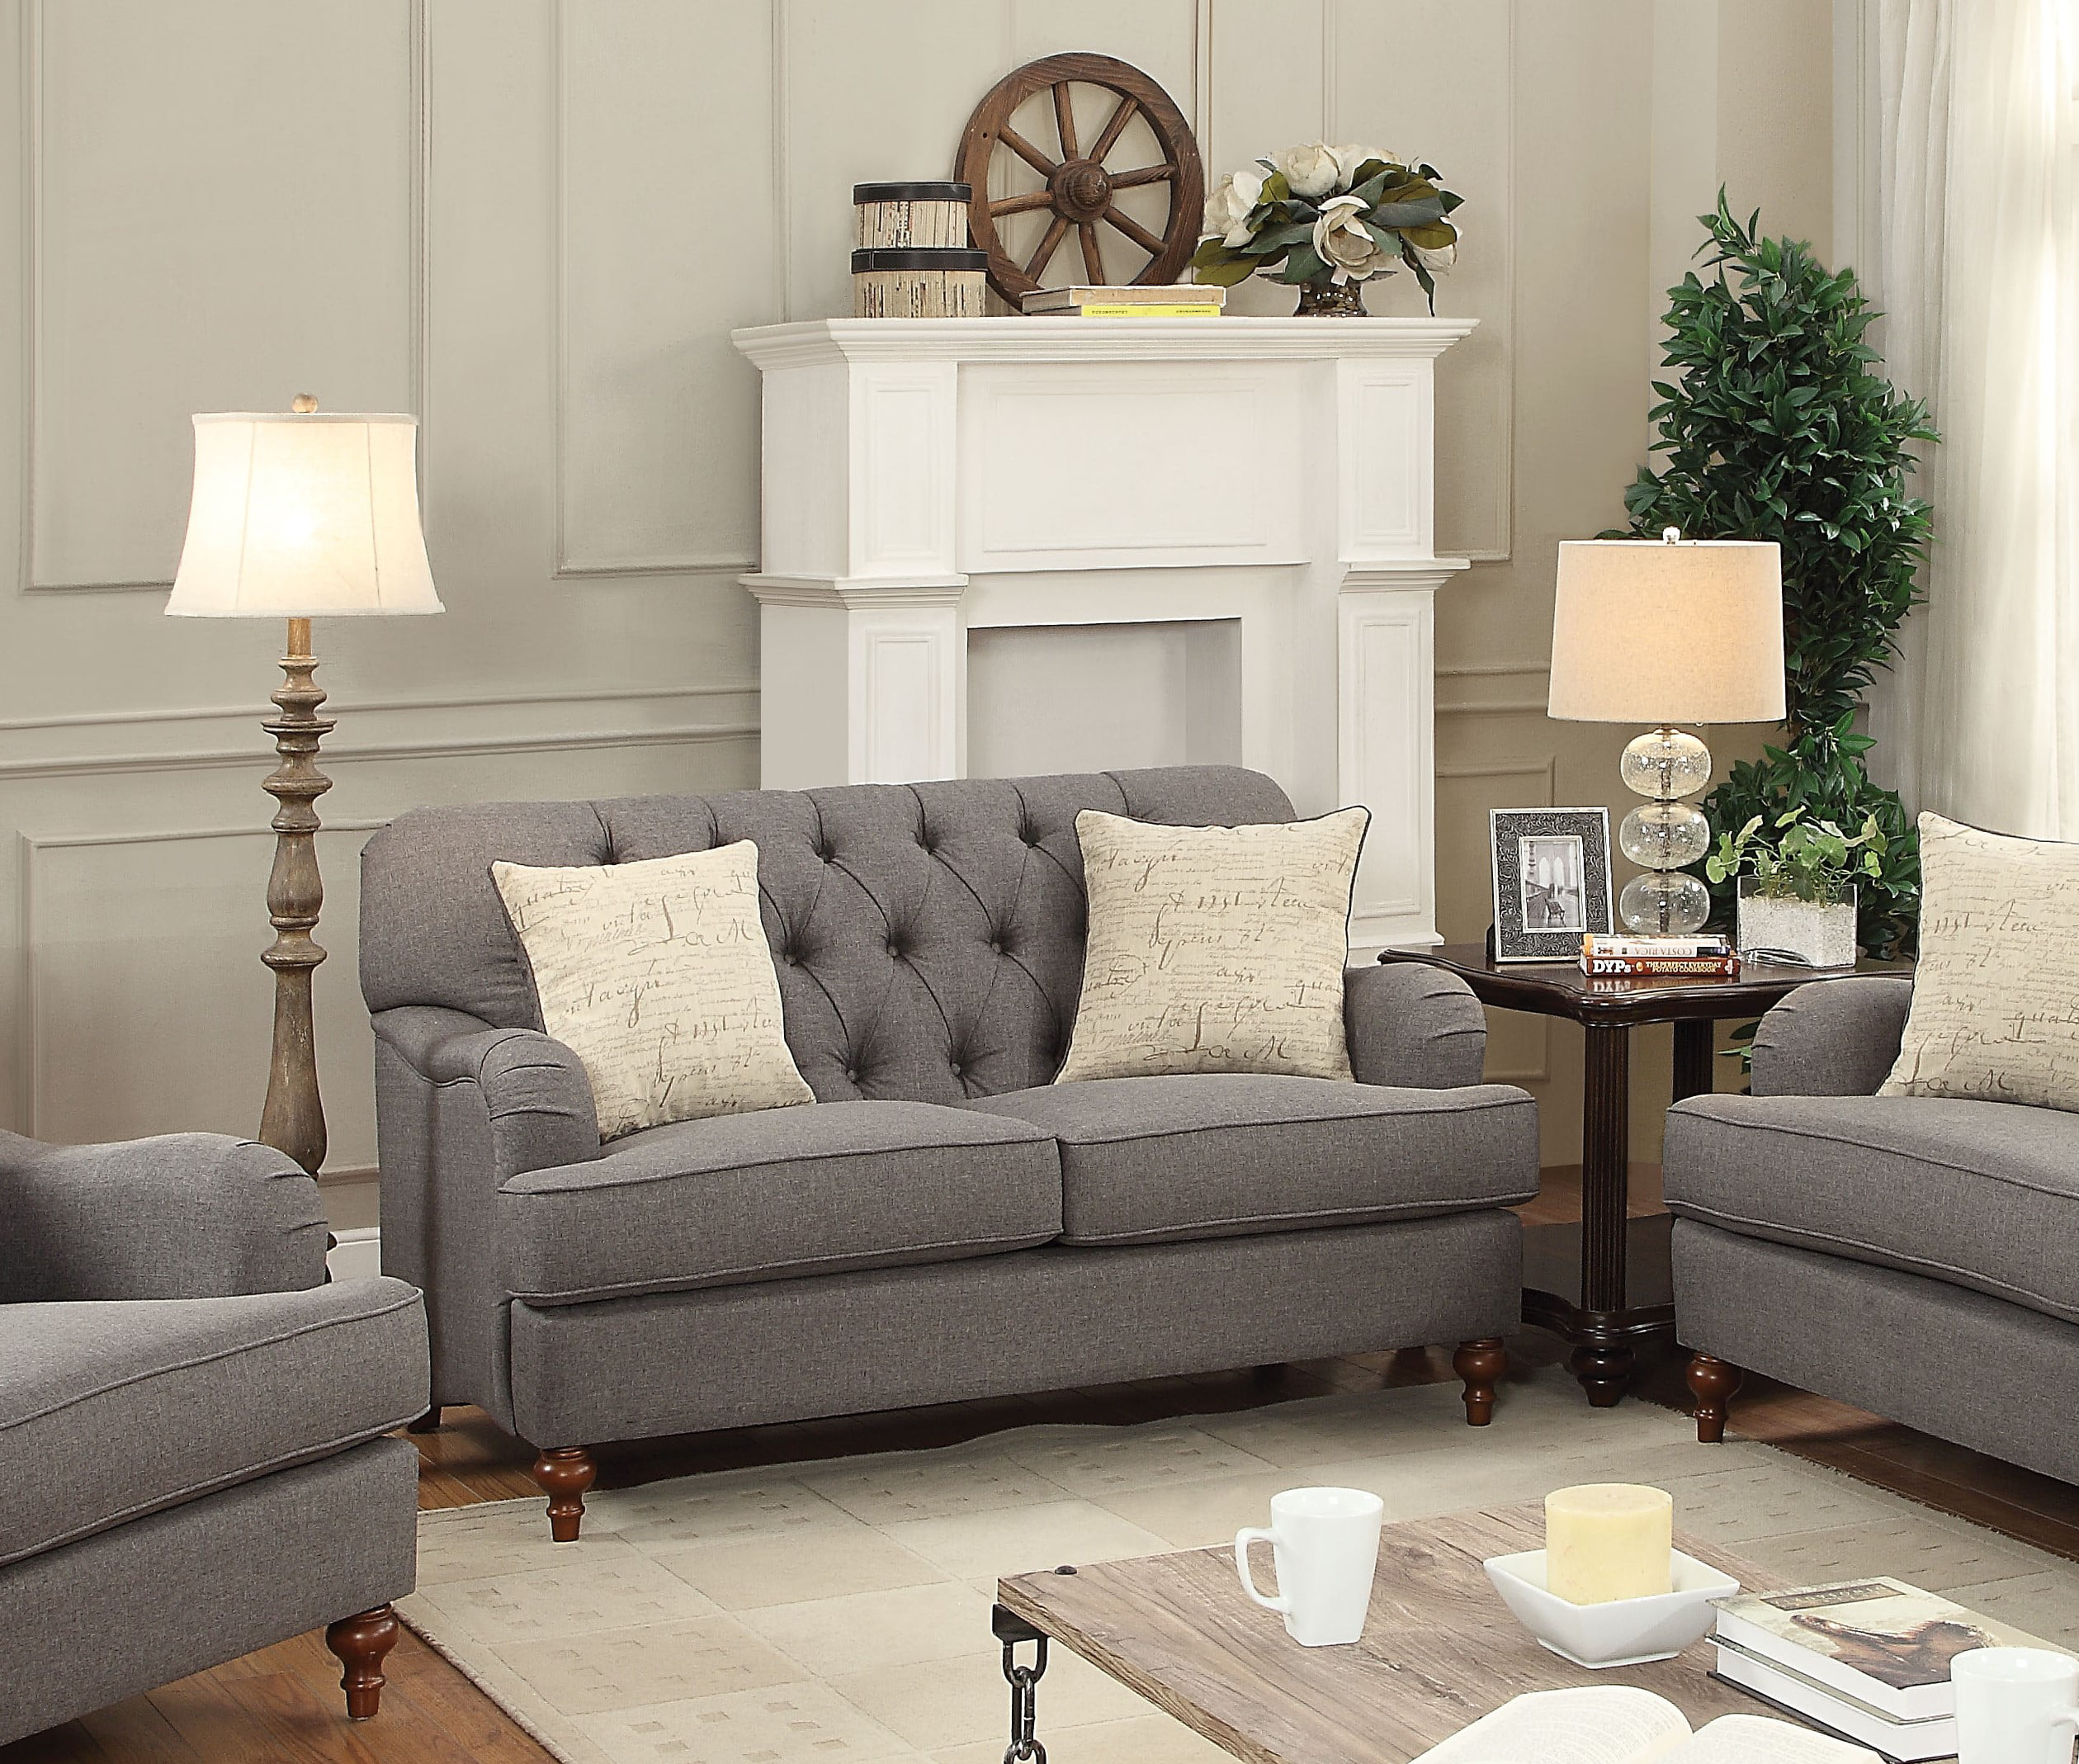 ACME Alianza Loveseat with 2 Pillows in Multiple Colors by Acme Furniture